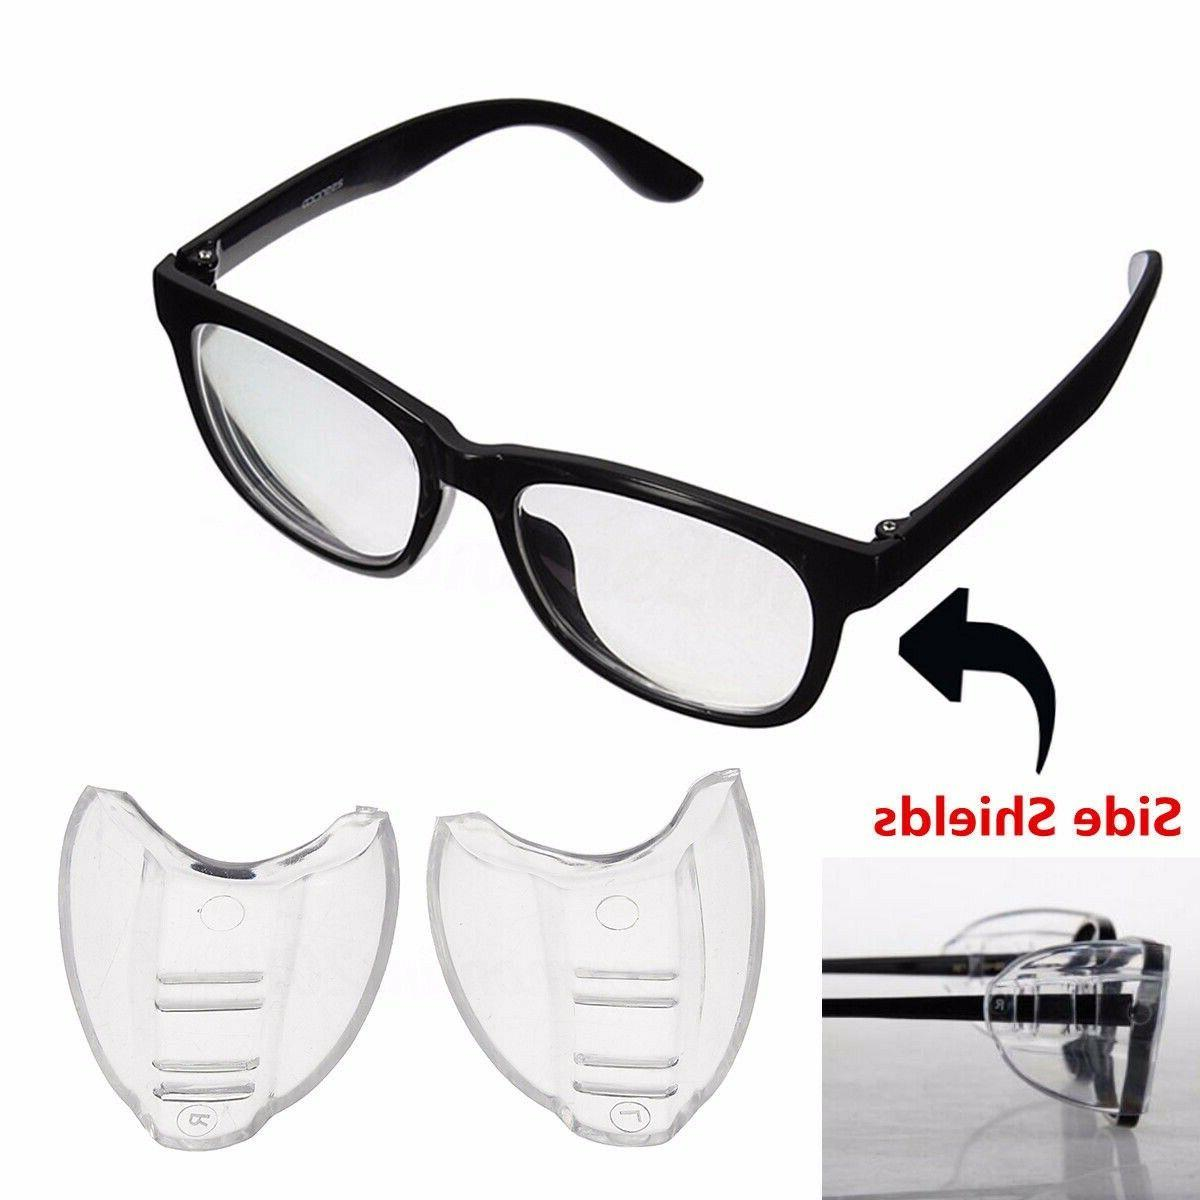 2pcs clear universal flexible side shields safety